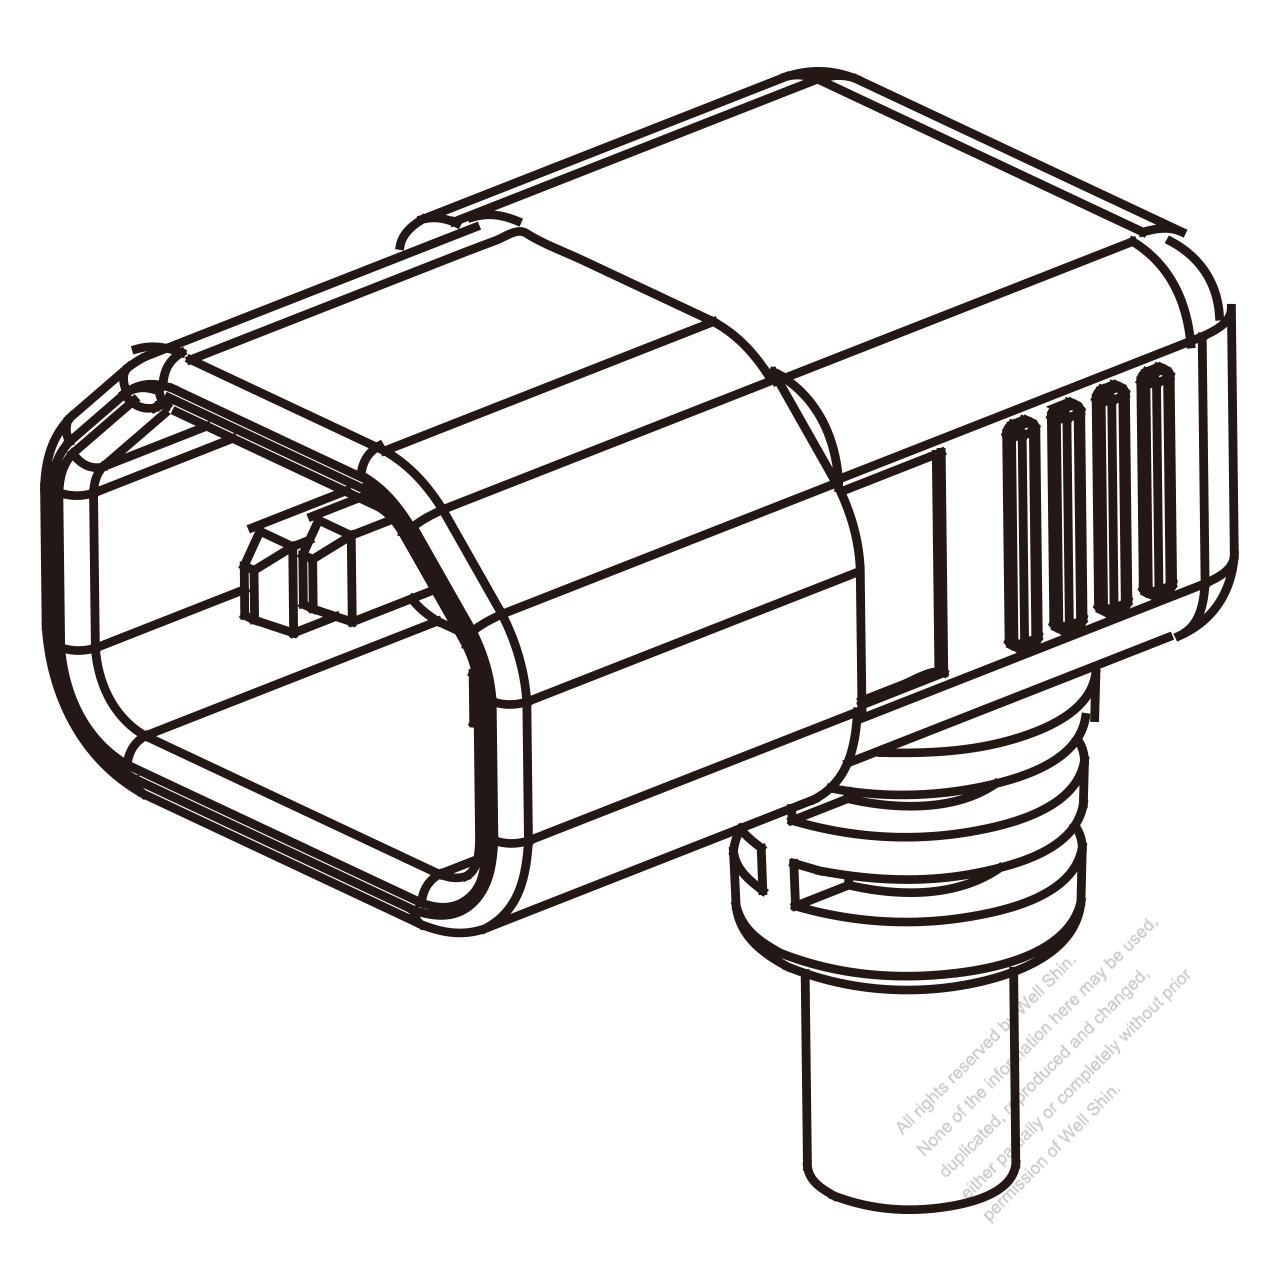 Europe Iec 320 Sheet E C14 Plug Connectors 3 Pin Angle 10a 250v